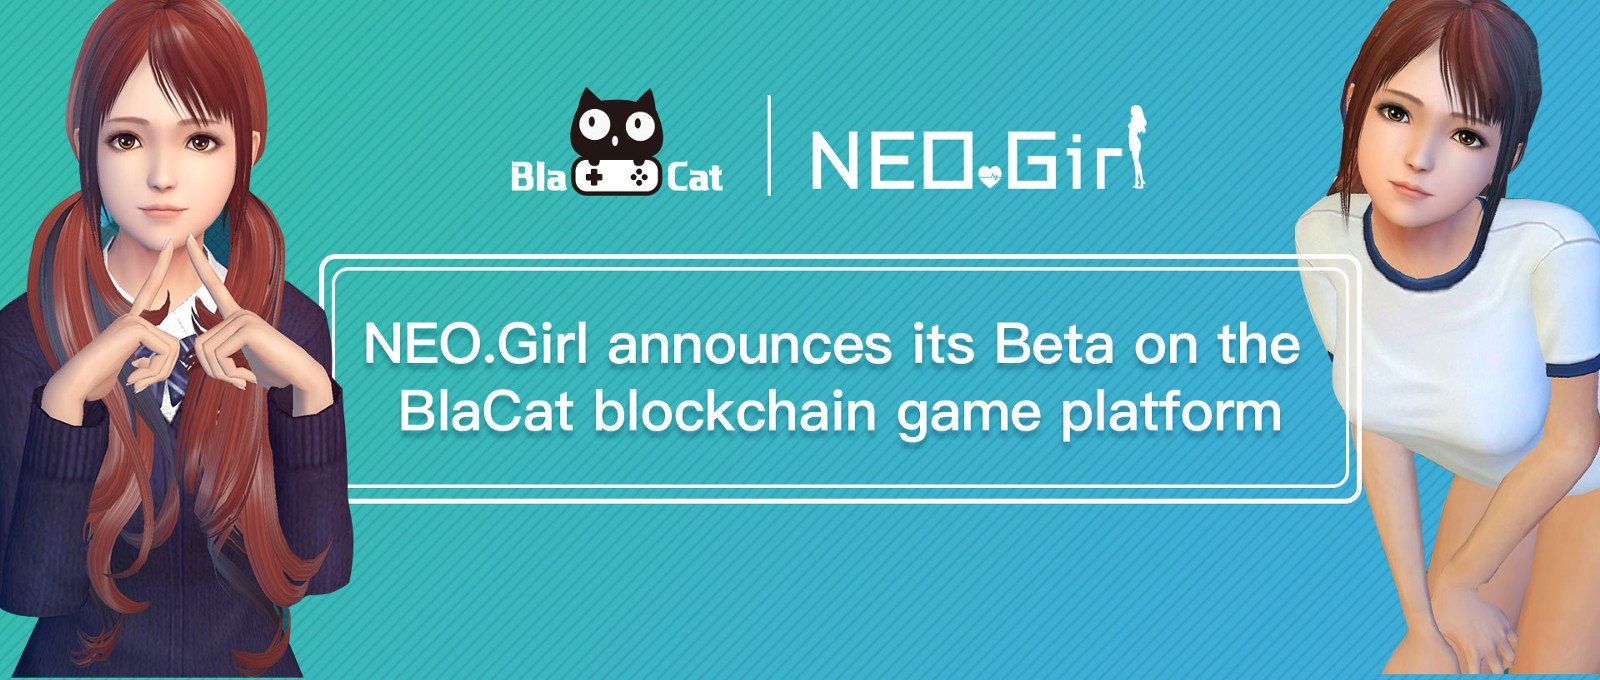 BlaCat anuncia la beta de su juego NEO Girl